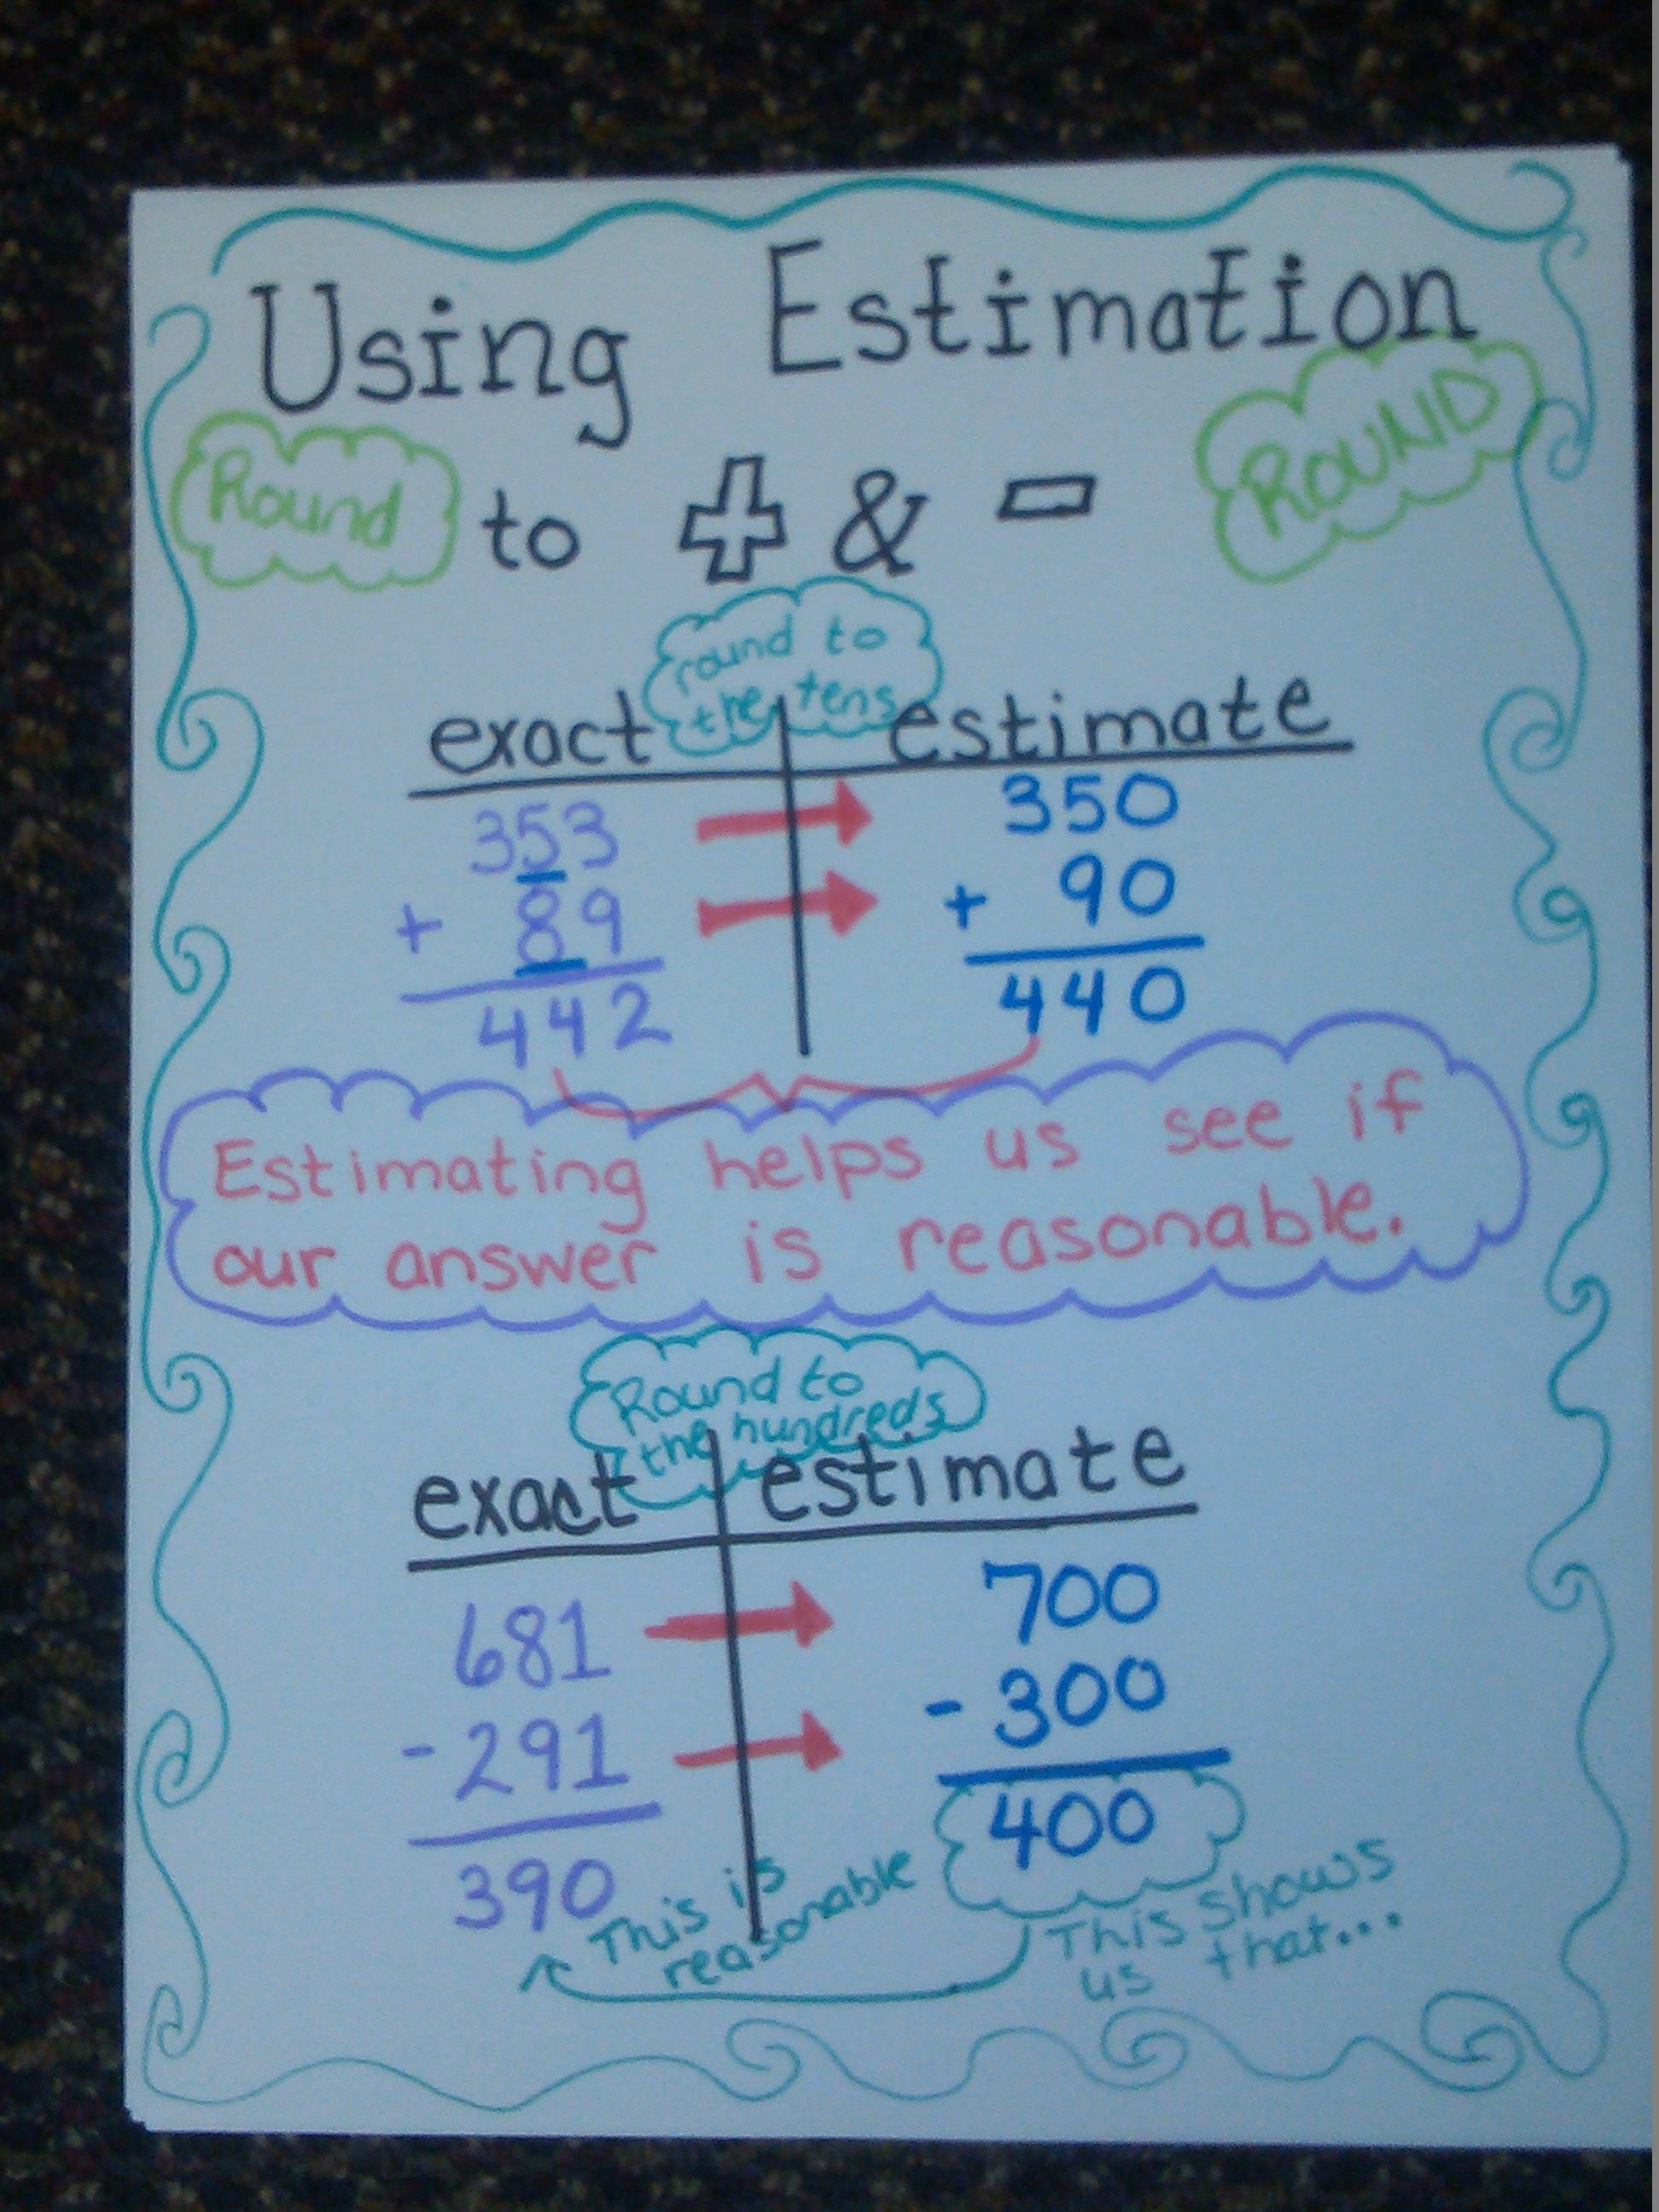 Estimating With Finding A Reasonable Answer In Addition And Subtraction Problems Free Printable Math Worksheets Math Homework Help Printable Math Worksheets Estimation word problems worksheets